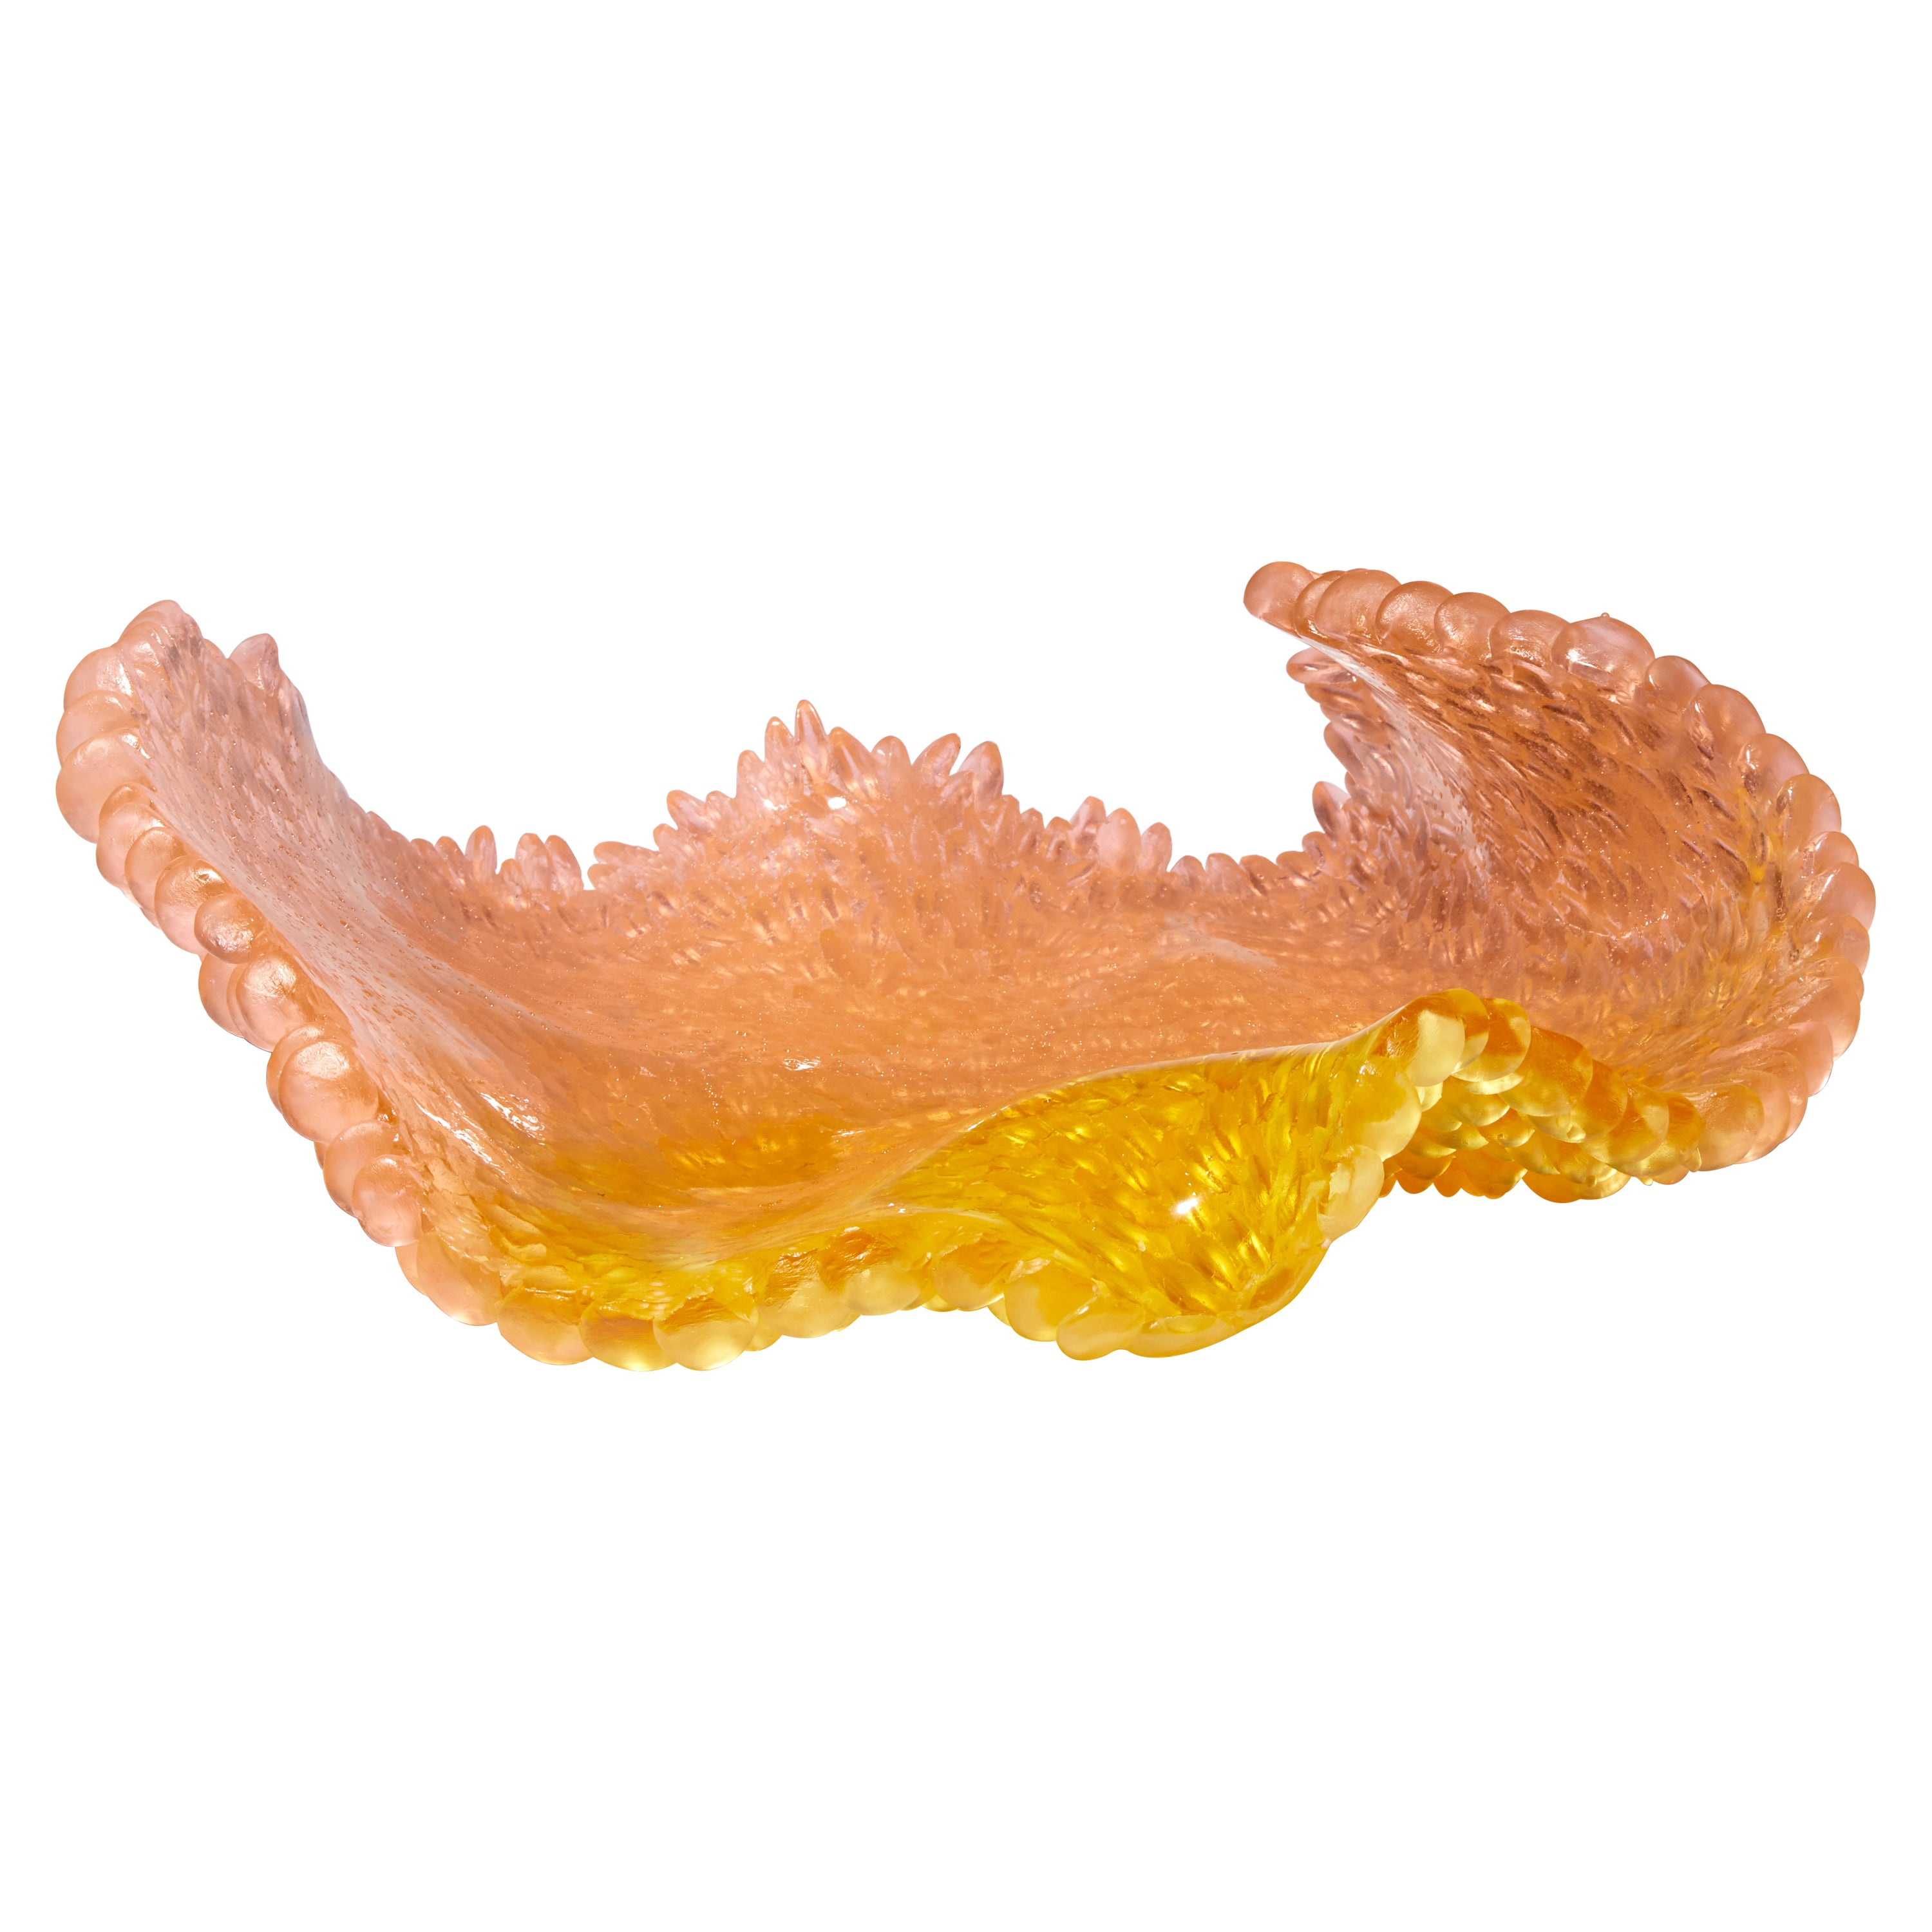 Orange Rose, a Glass Sculpture in Amber, Gold and Peach by Nina Casson McGarva